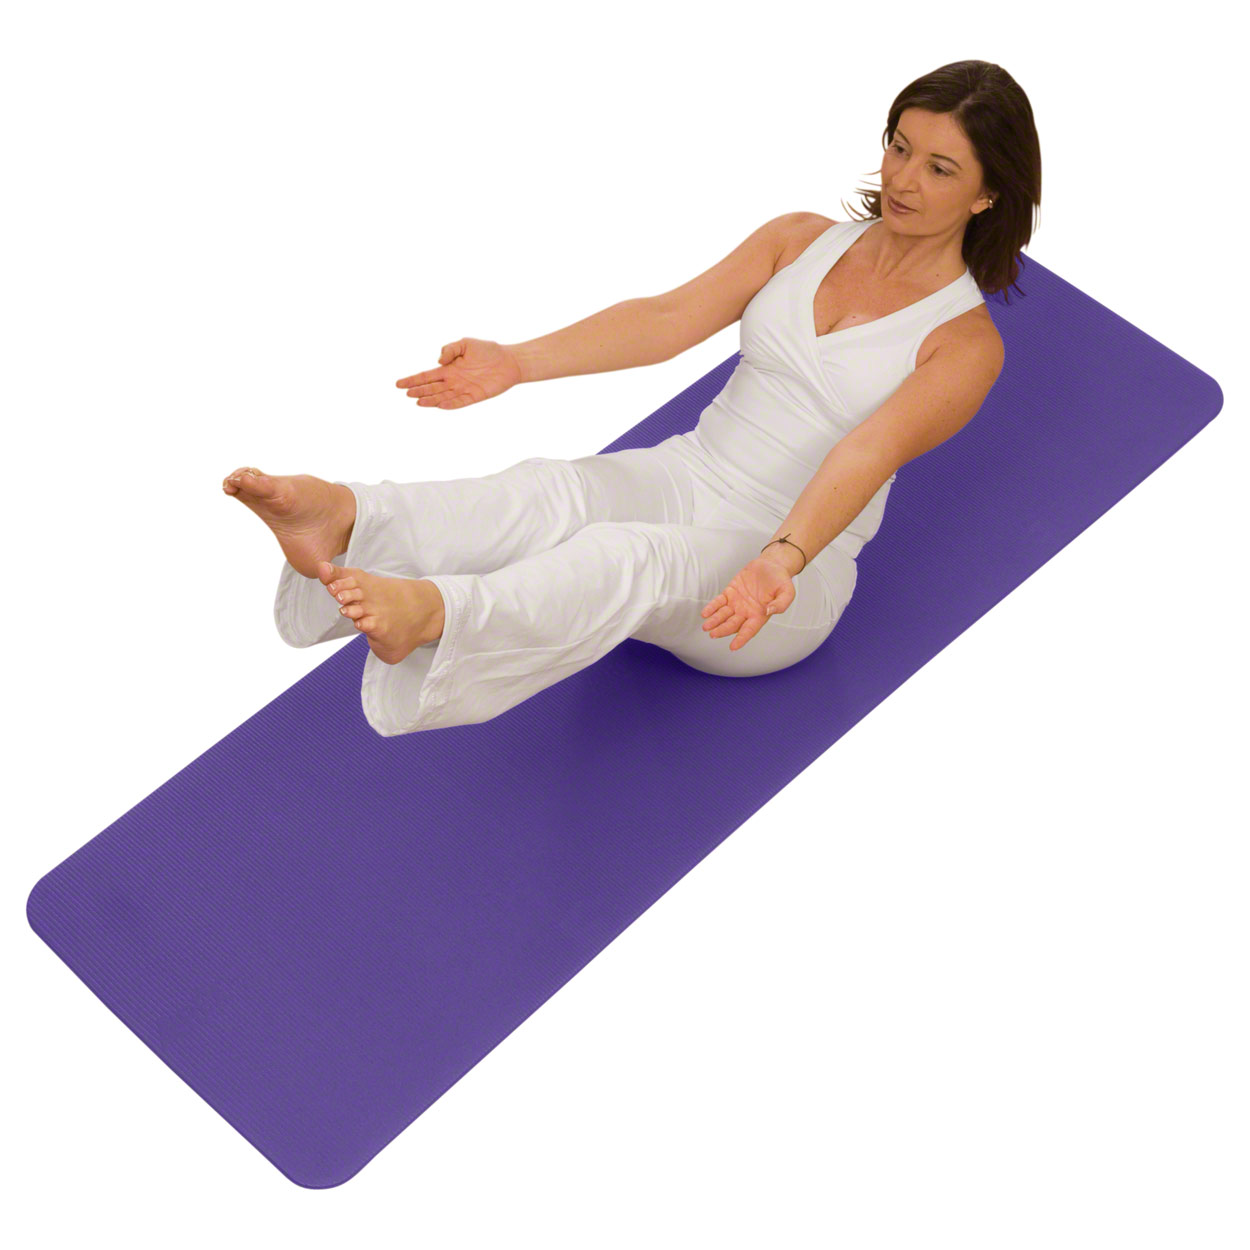 Airex Pilates And Yoga Mat 190 Lxwxh 190x60x0 8 Cm Buy Online Sport Tec